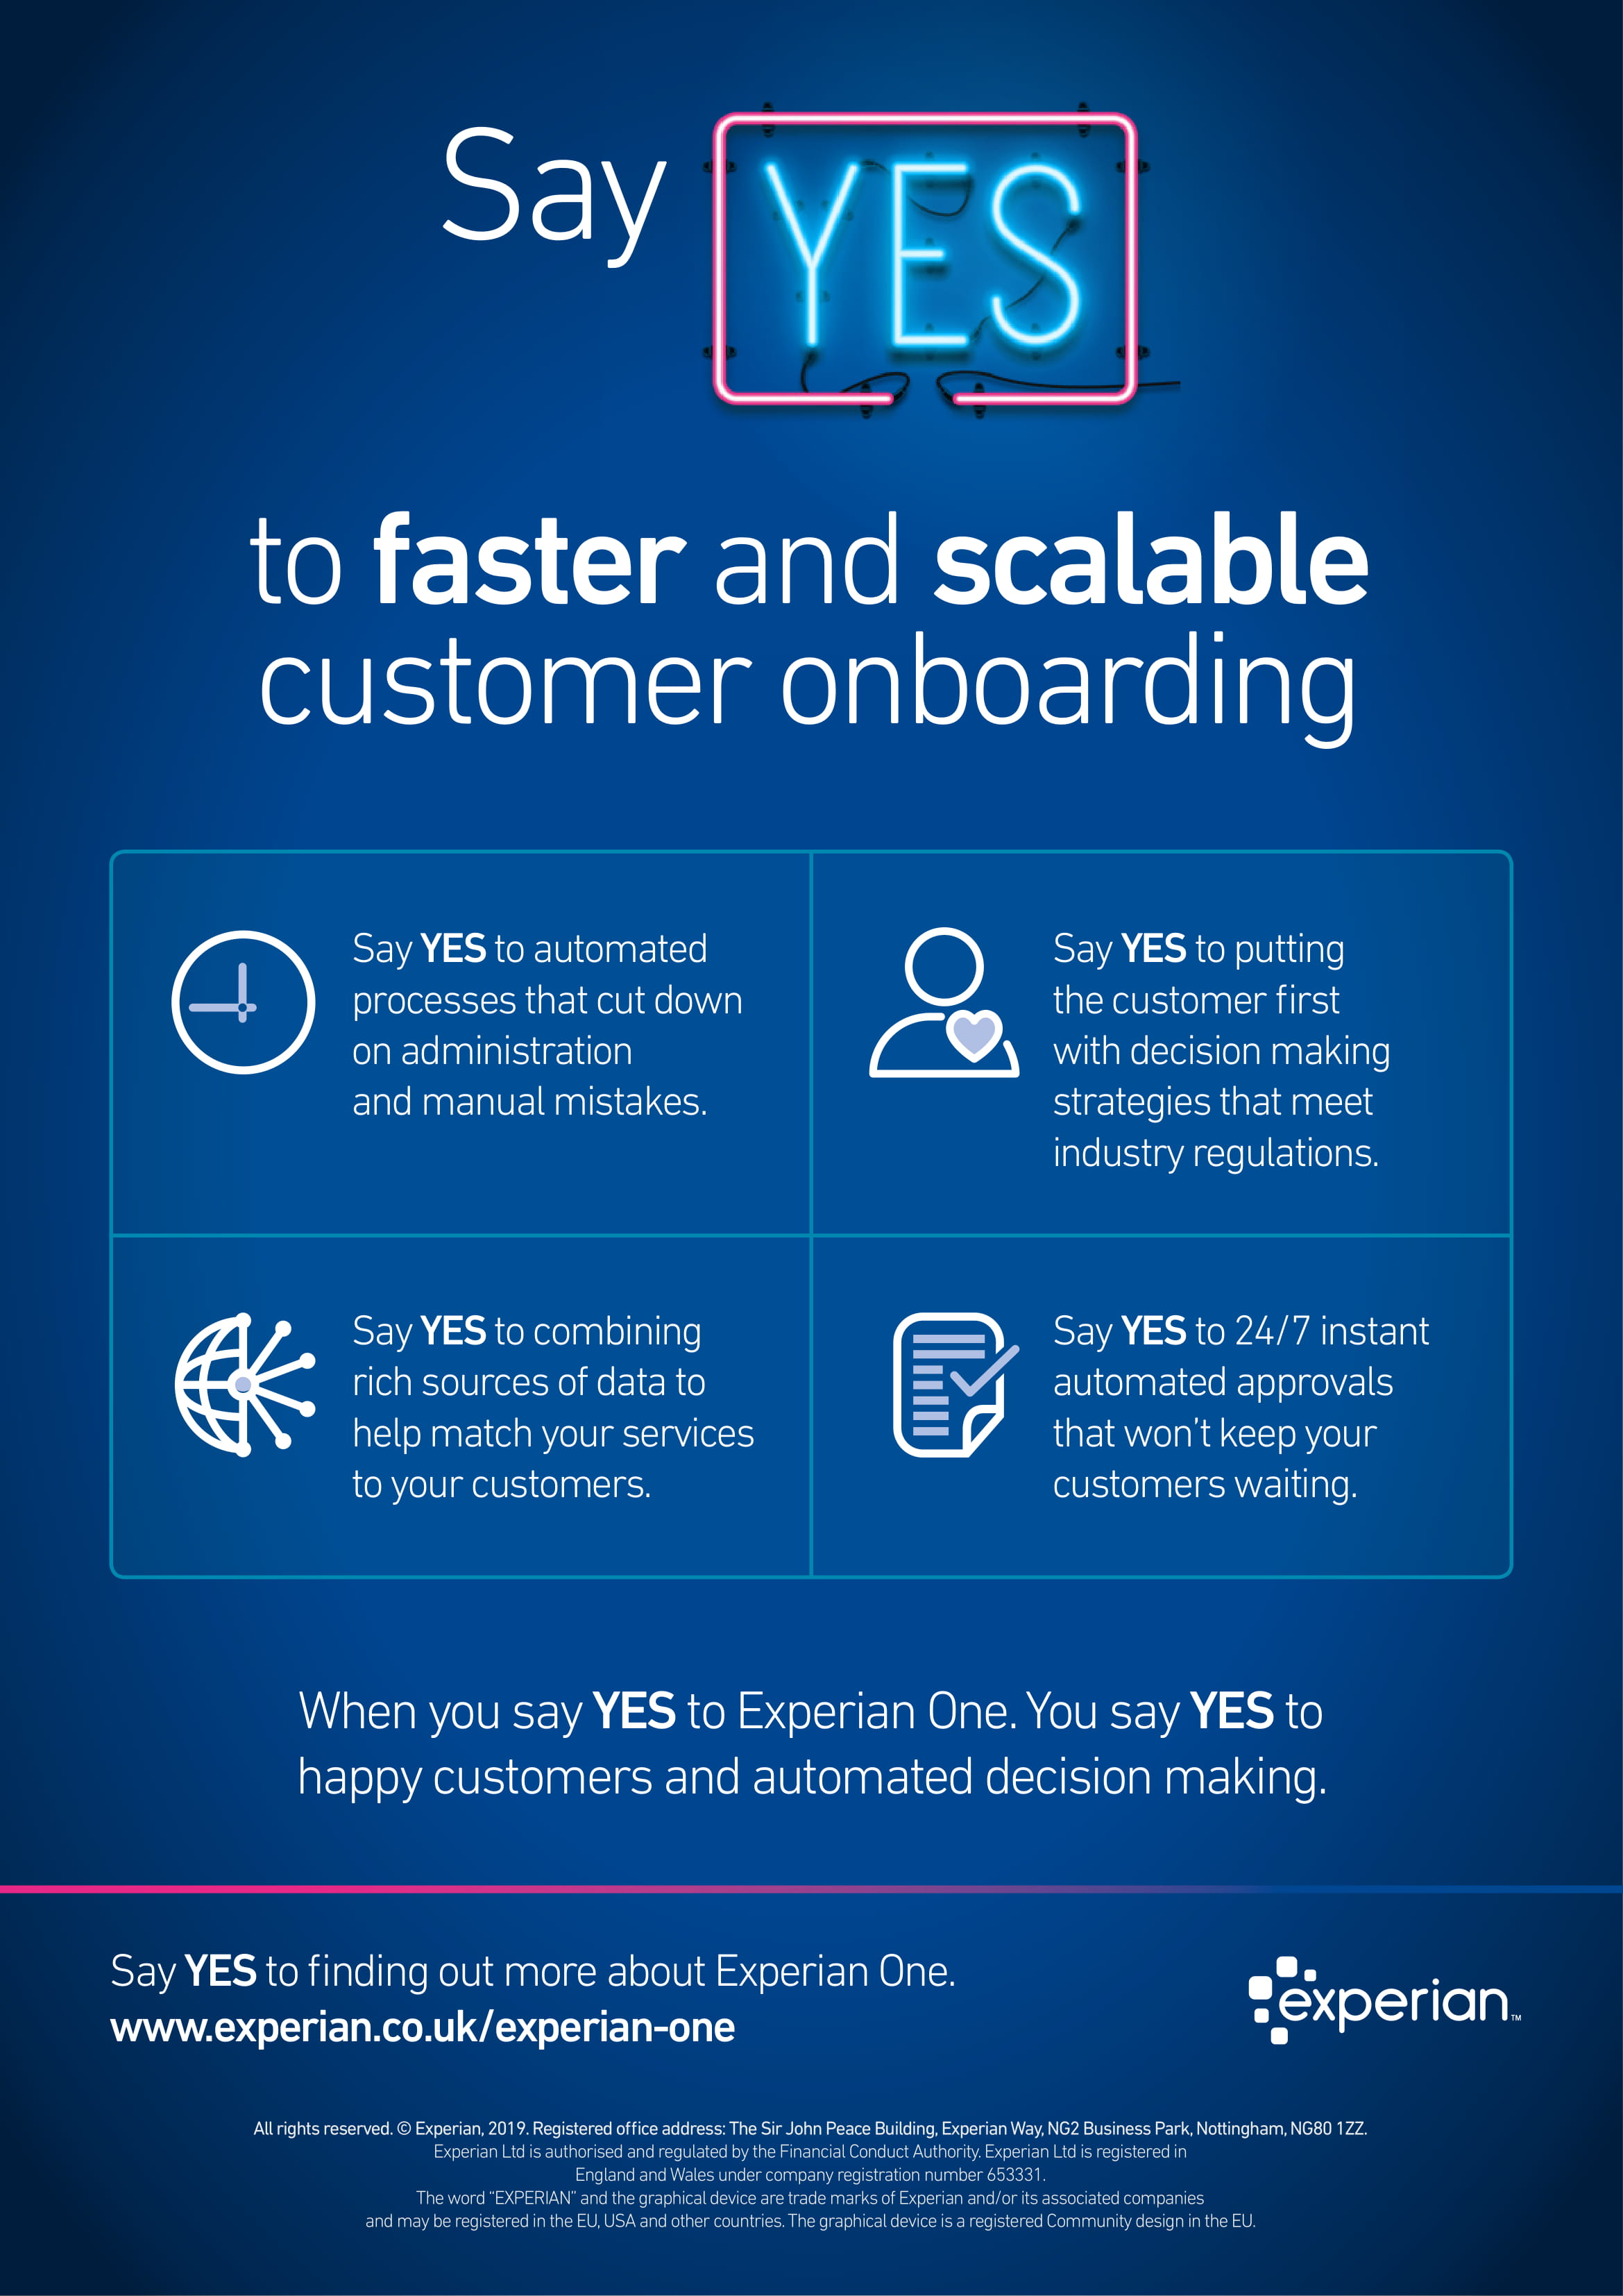 Say YES to a faster customer onboarding process